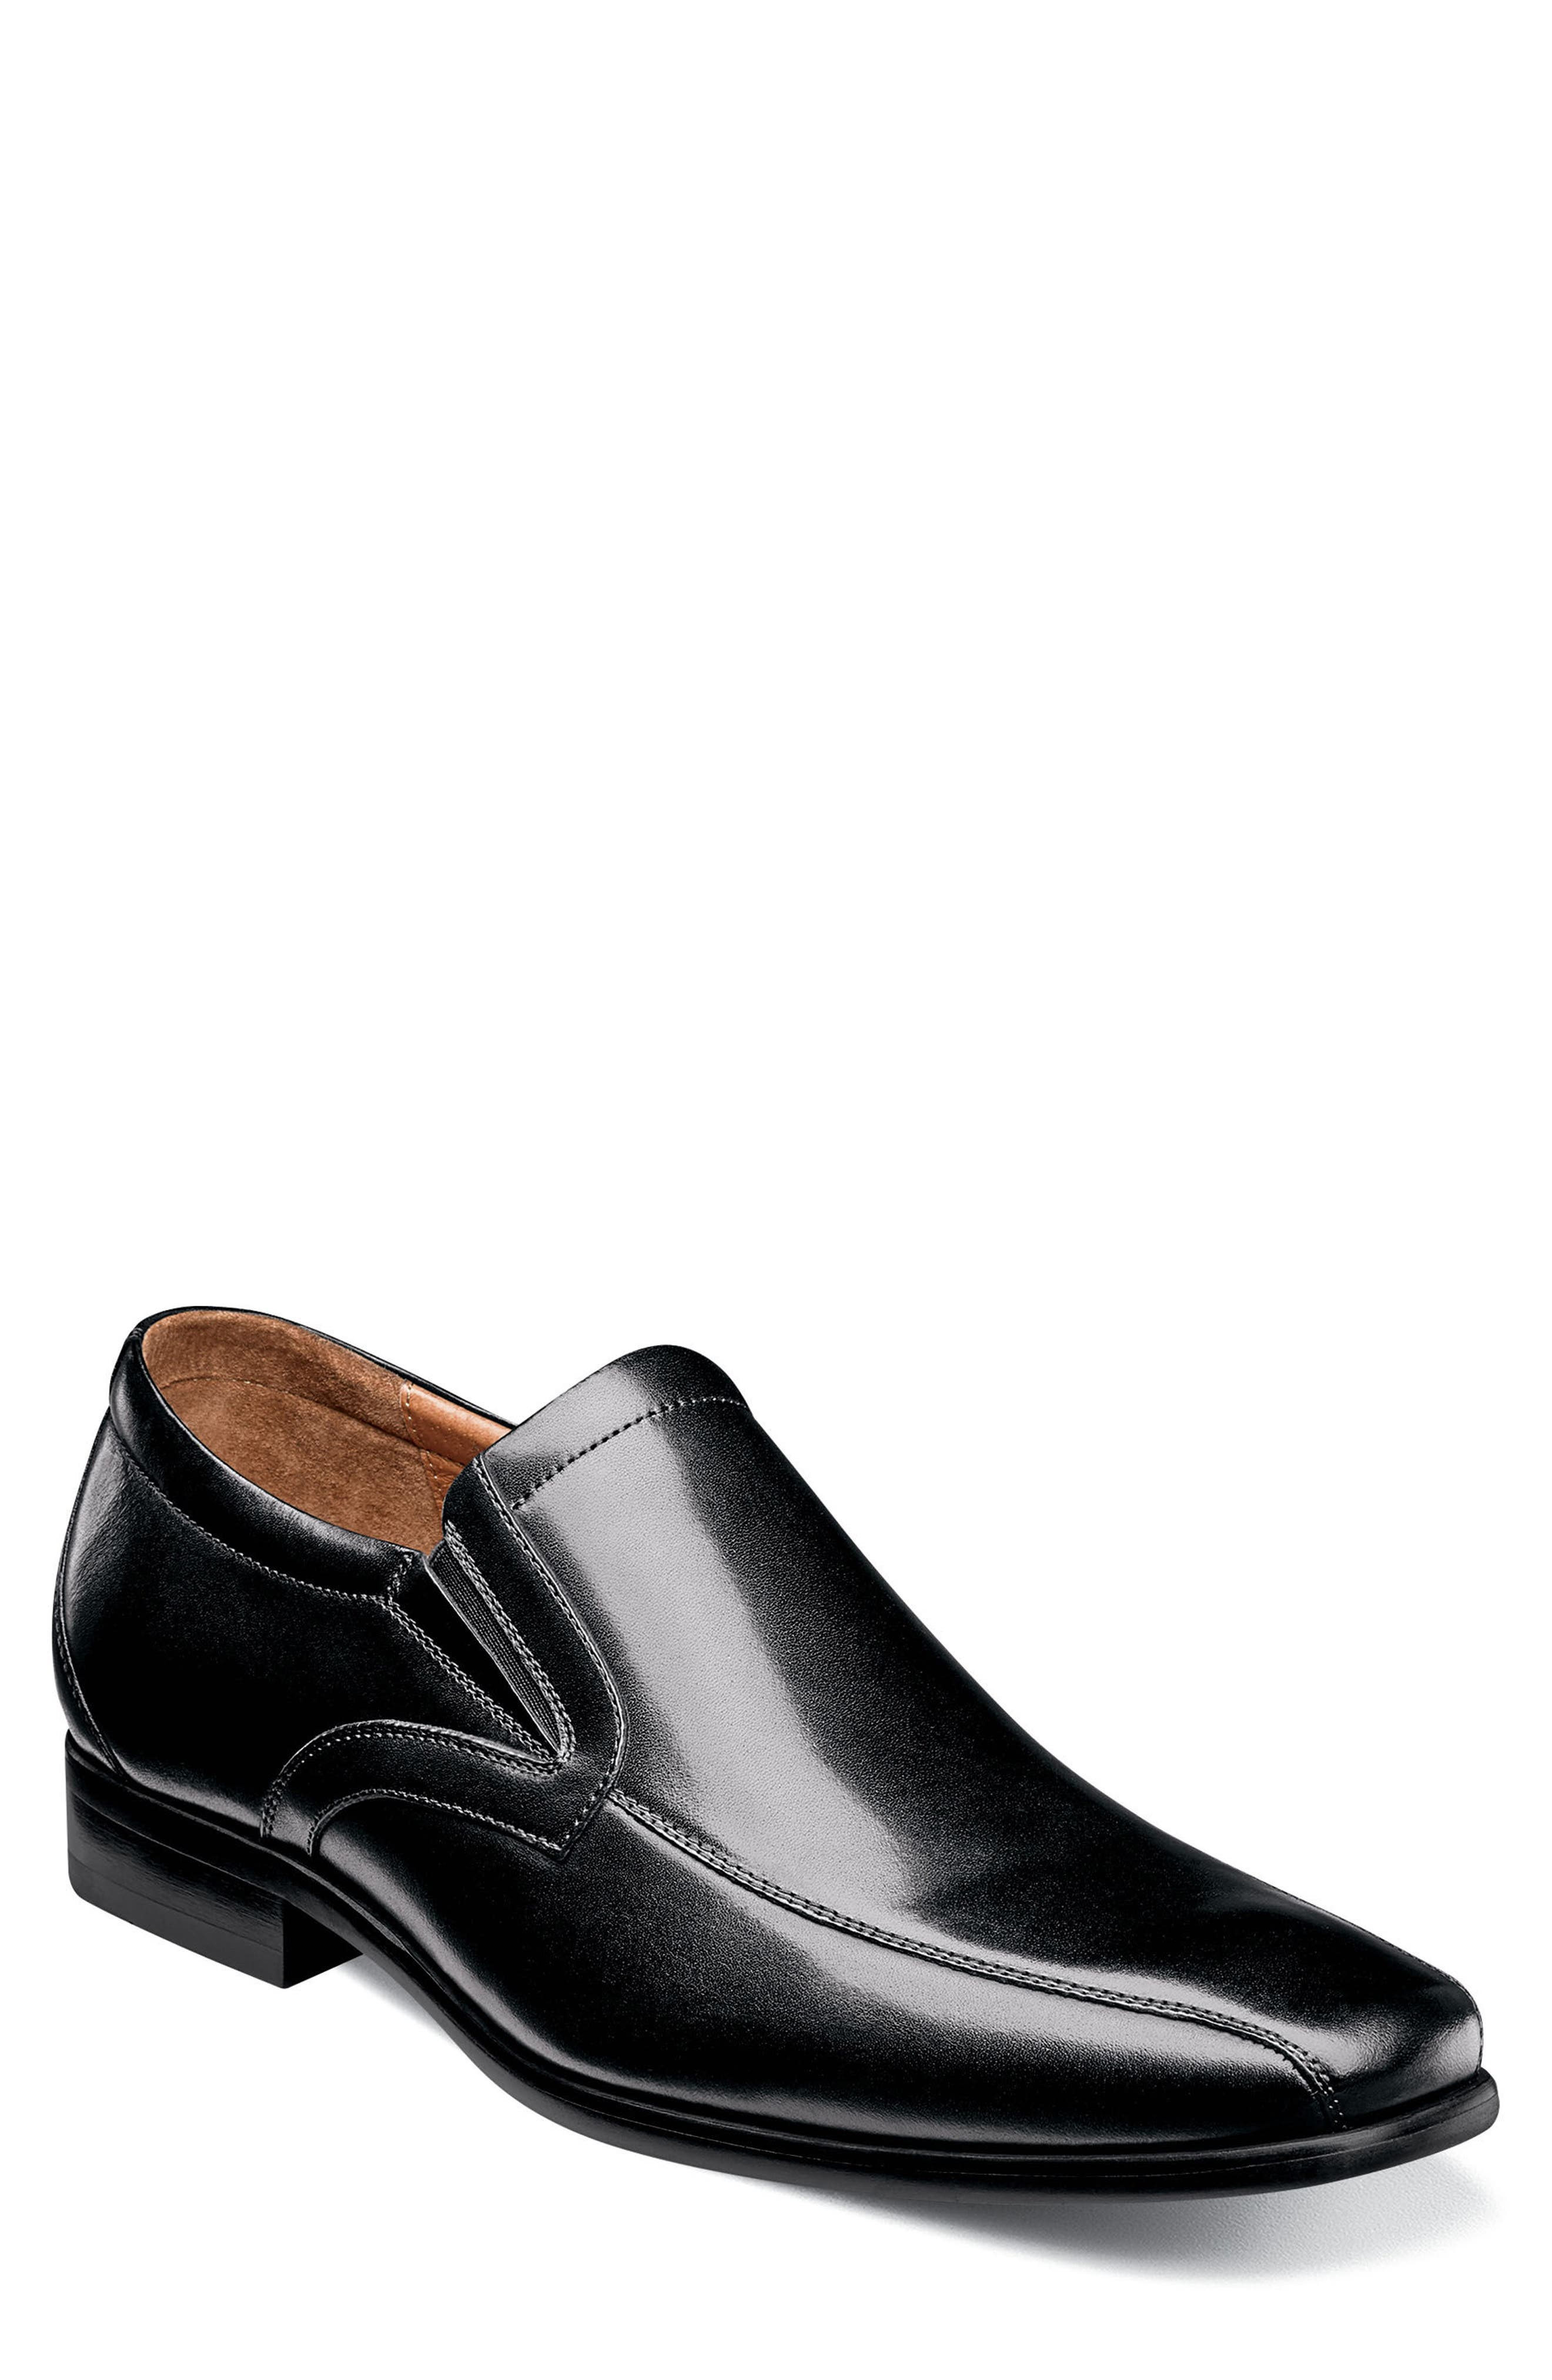 Postino Bike Toe Slip-On,                             Main thumbnail 1, color,                             BLACK LEATHER